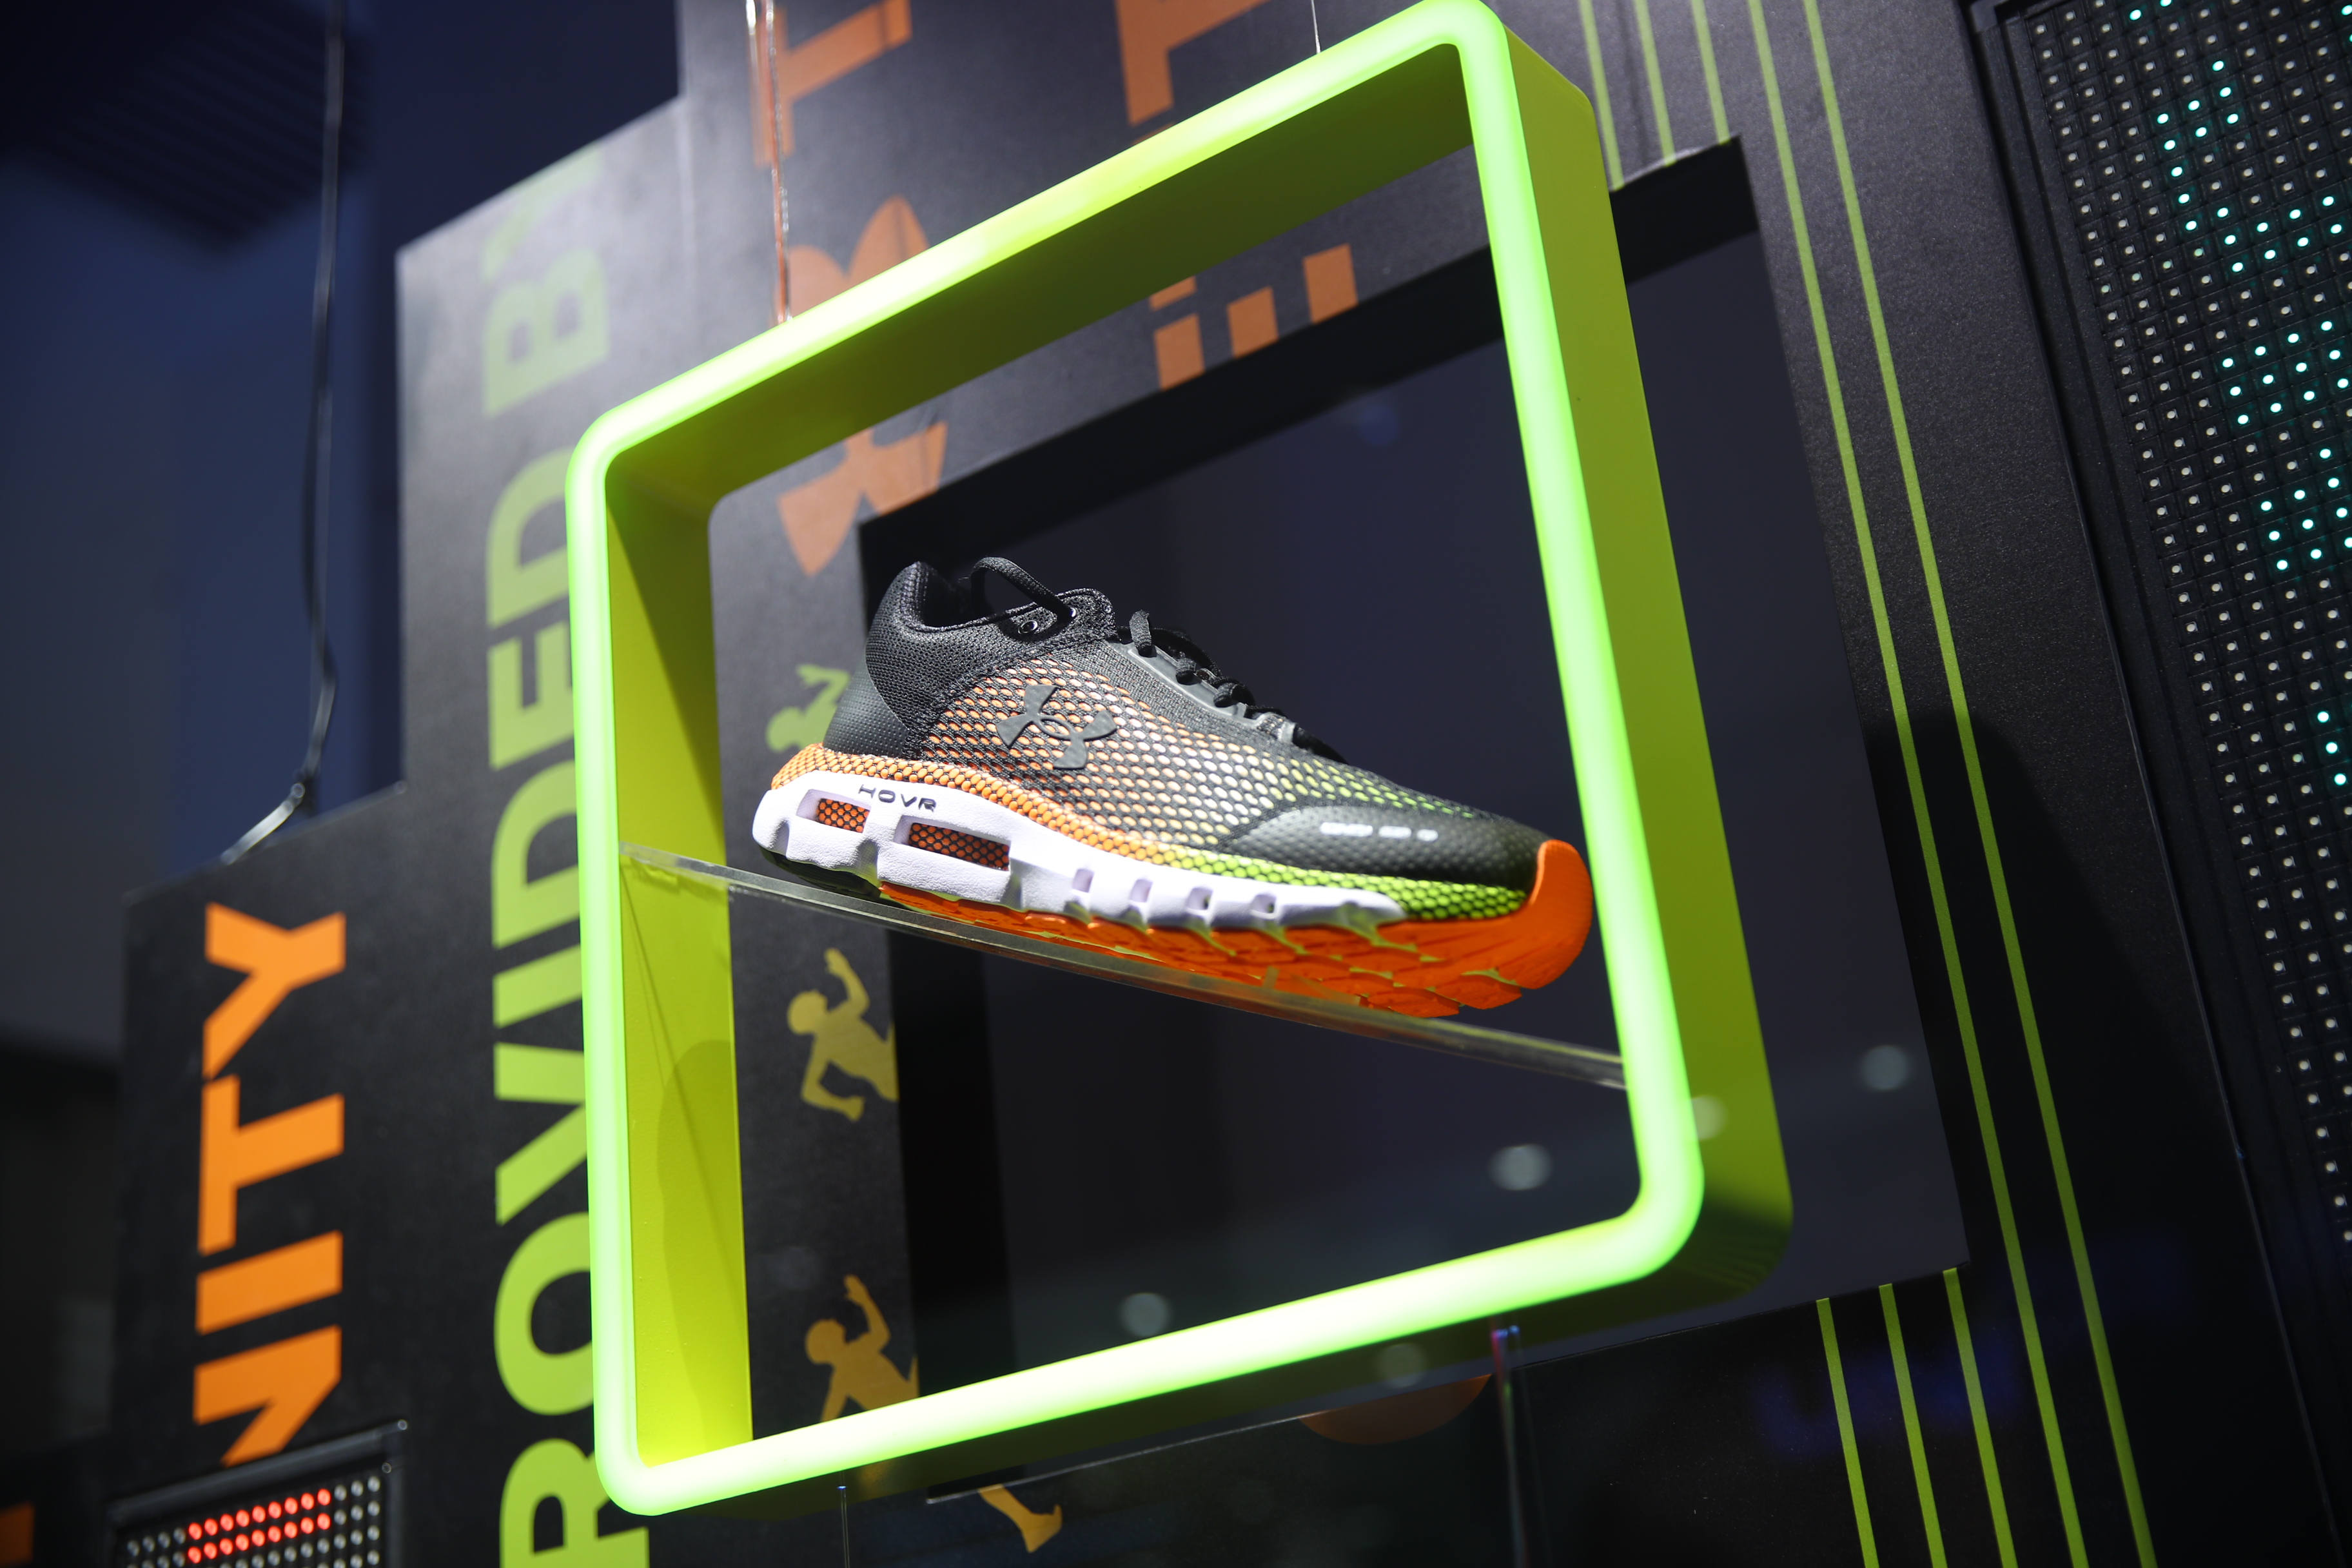 premium selection 98f78 75f6e Under Armour Launched Its 1st Digital Smart Shoes In ...